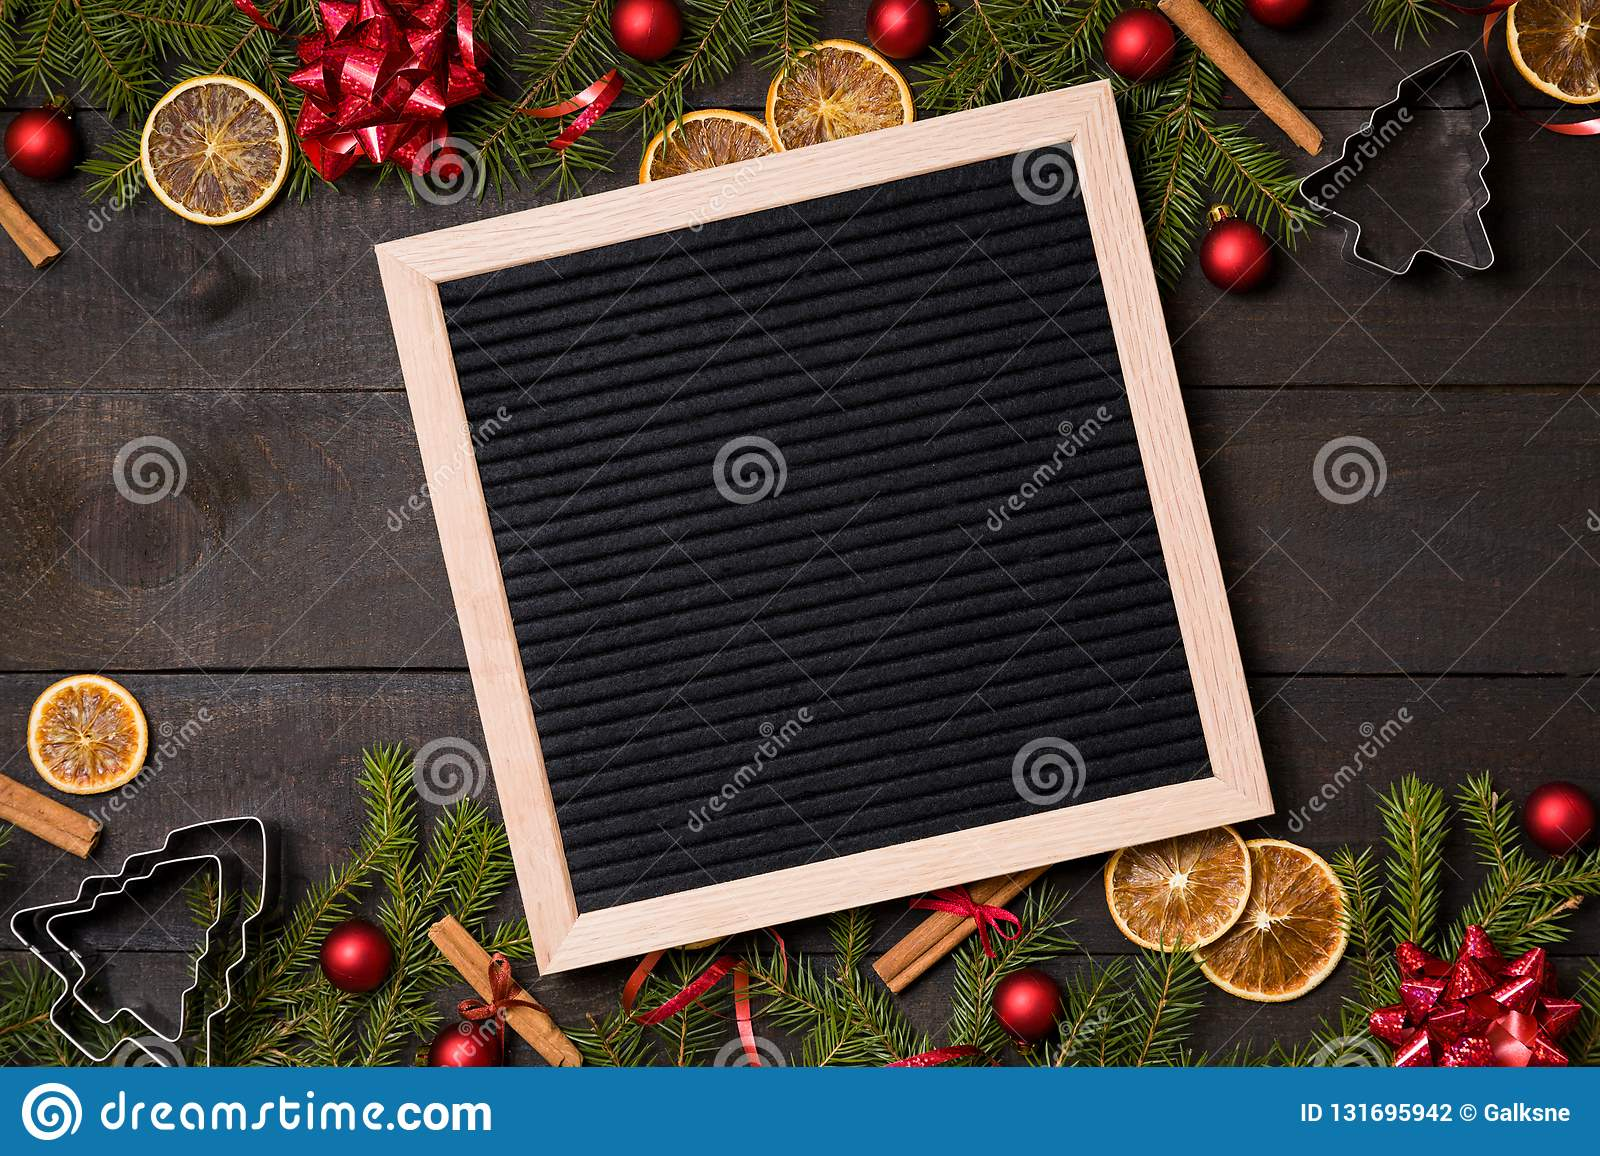 clear black felt letter board flatlay on dark rustic wood table with christmas decoration and fir